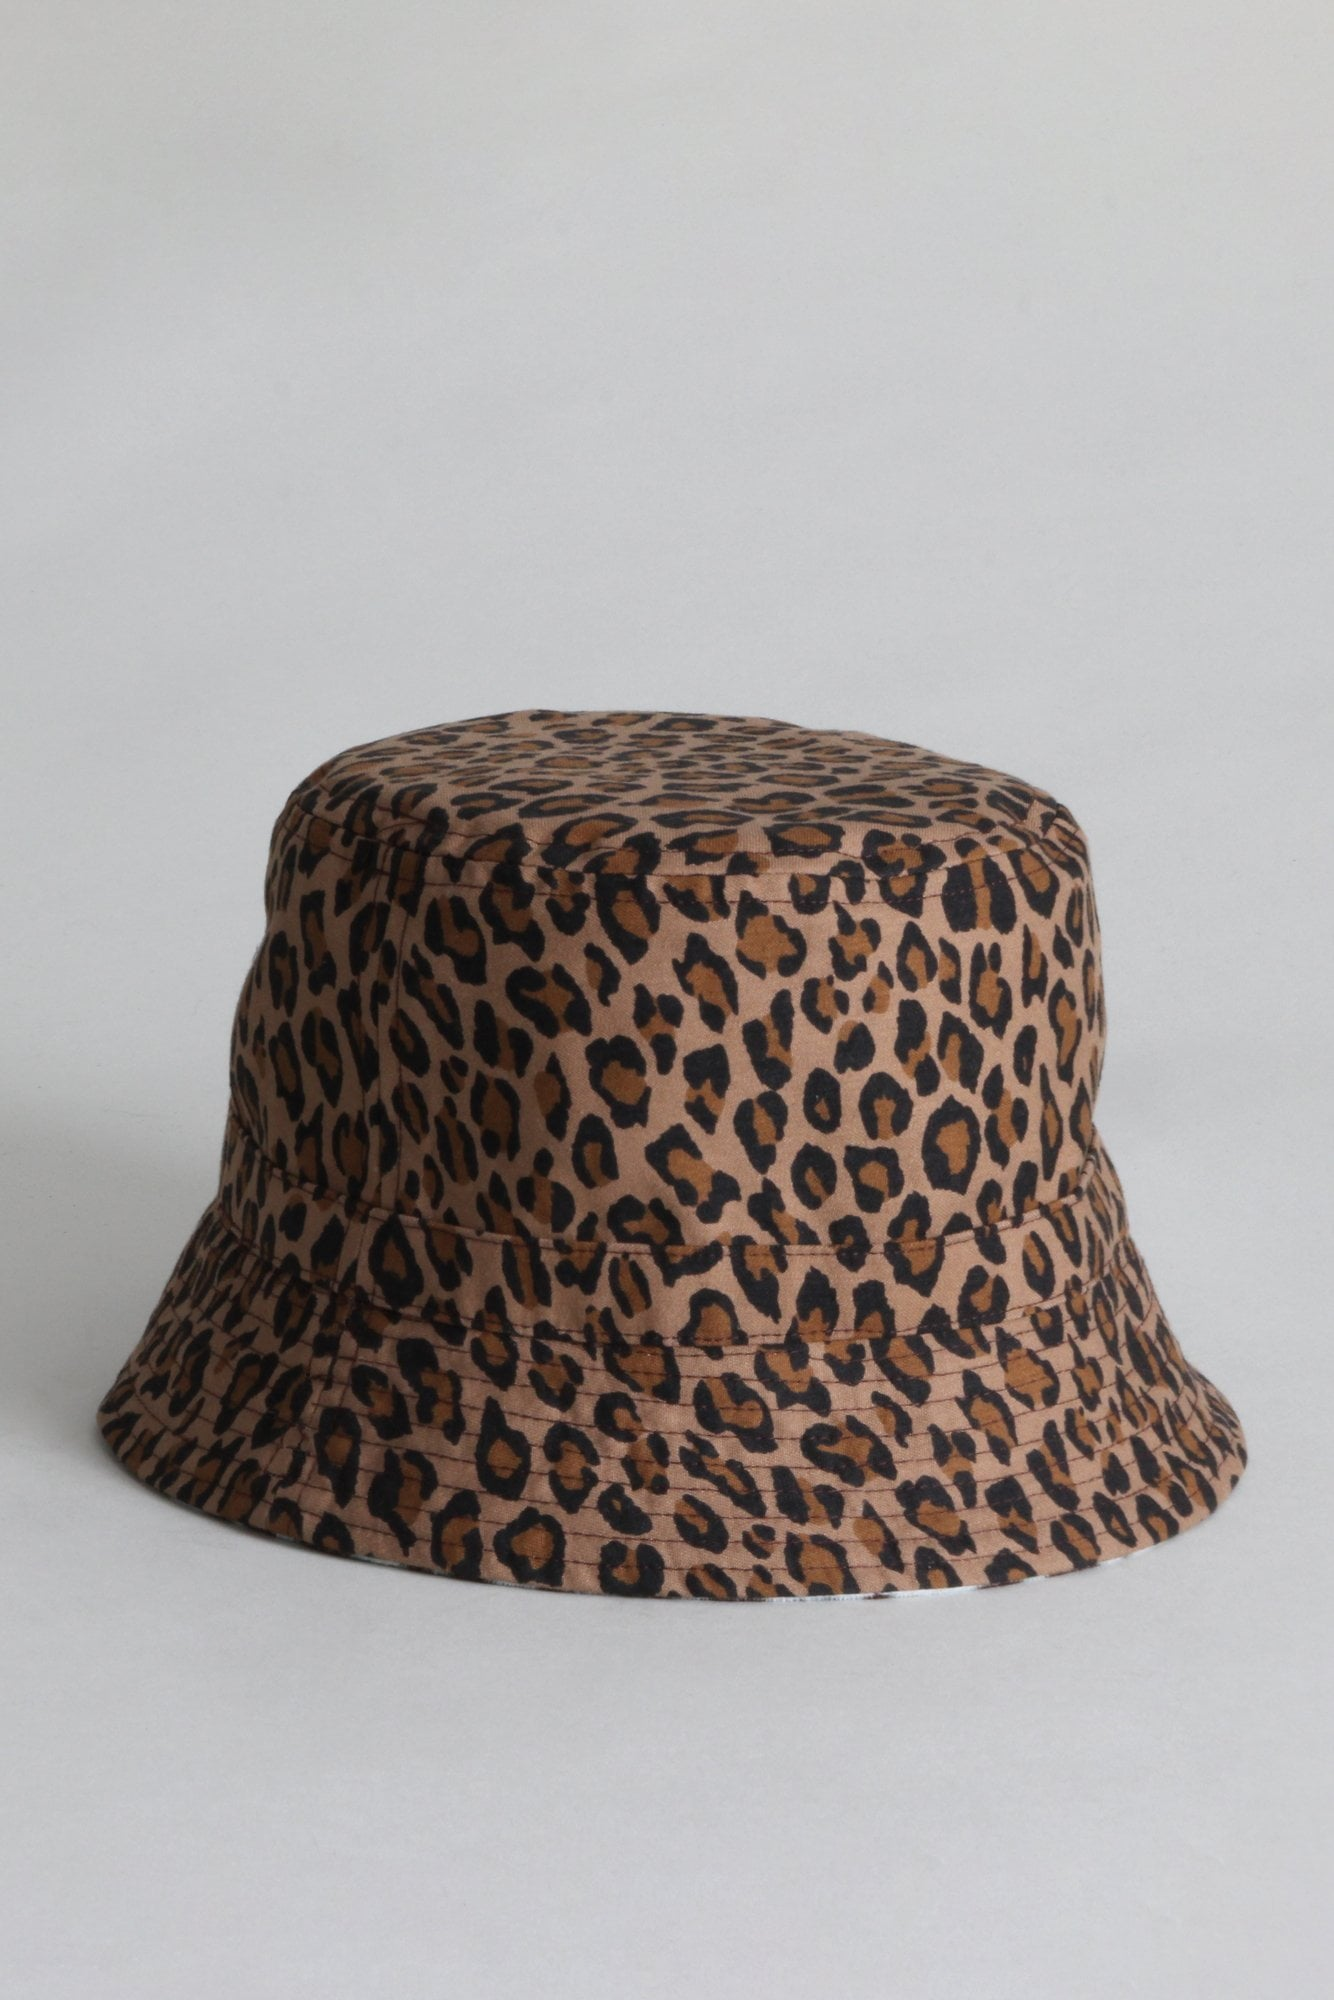 Reversible Bucket Hat - Pale Blue Tiger with Leopard